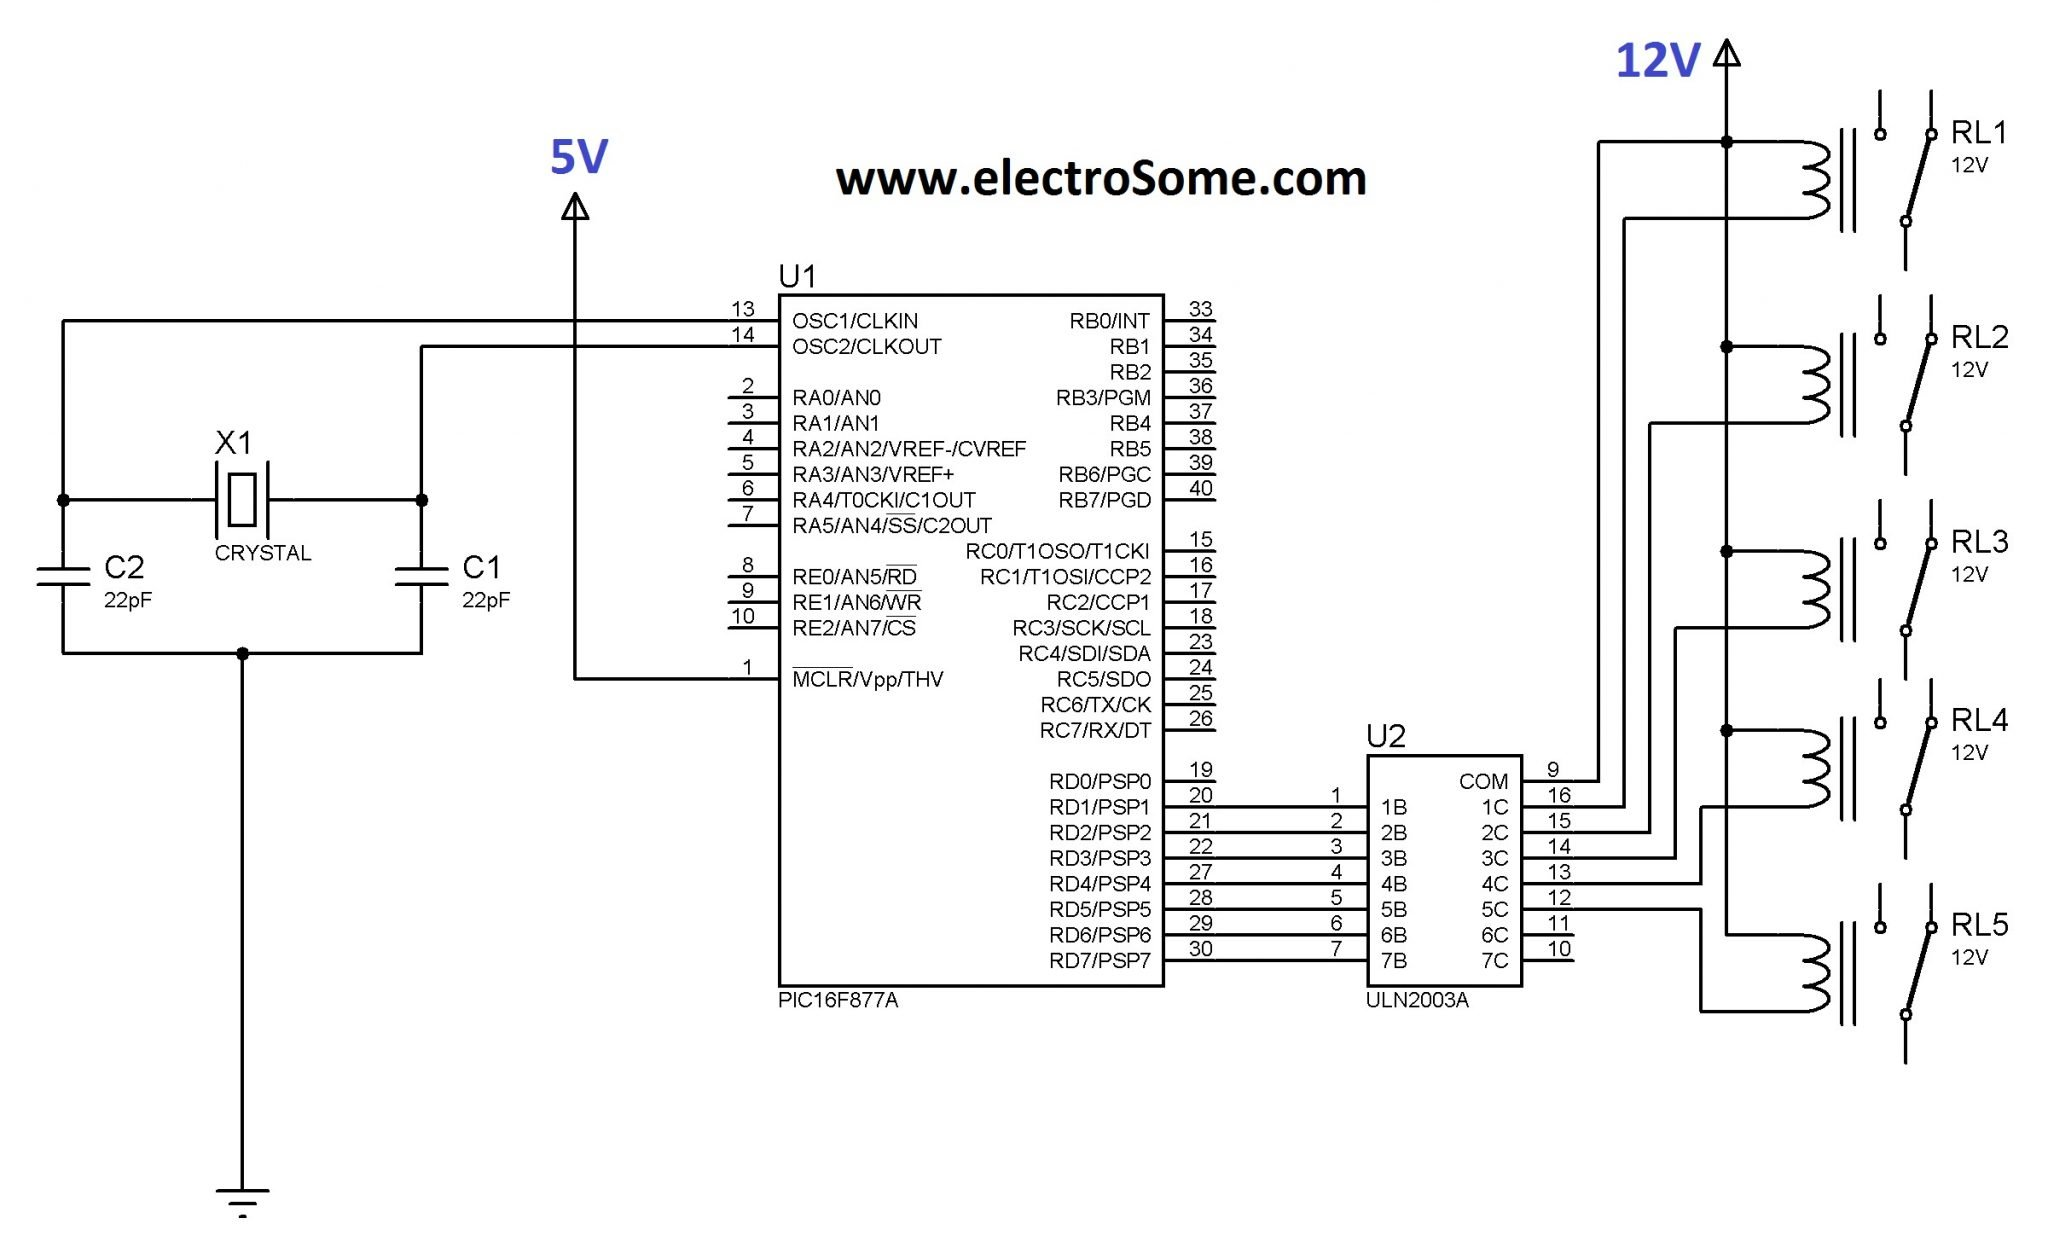 Pilz Pnoz X3 Wiring Diagram 27 Images 24vdc Relay 4 Interfacing With Pic Microcontroller Uln2003 Spdt